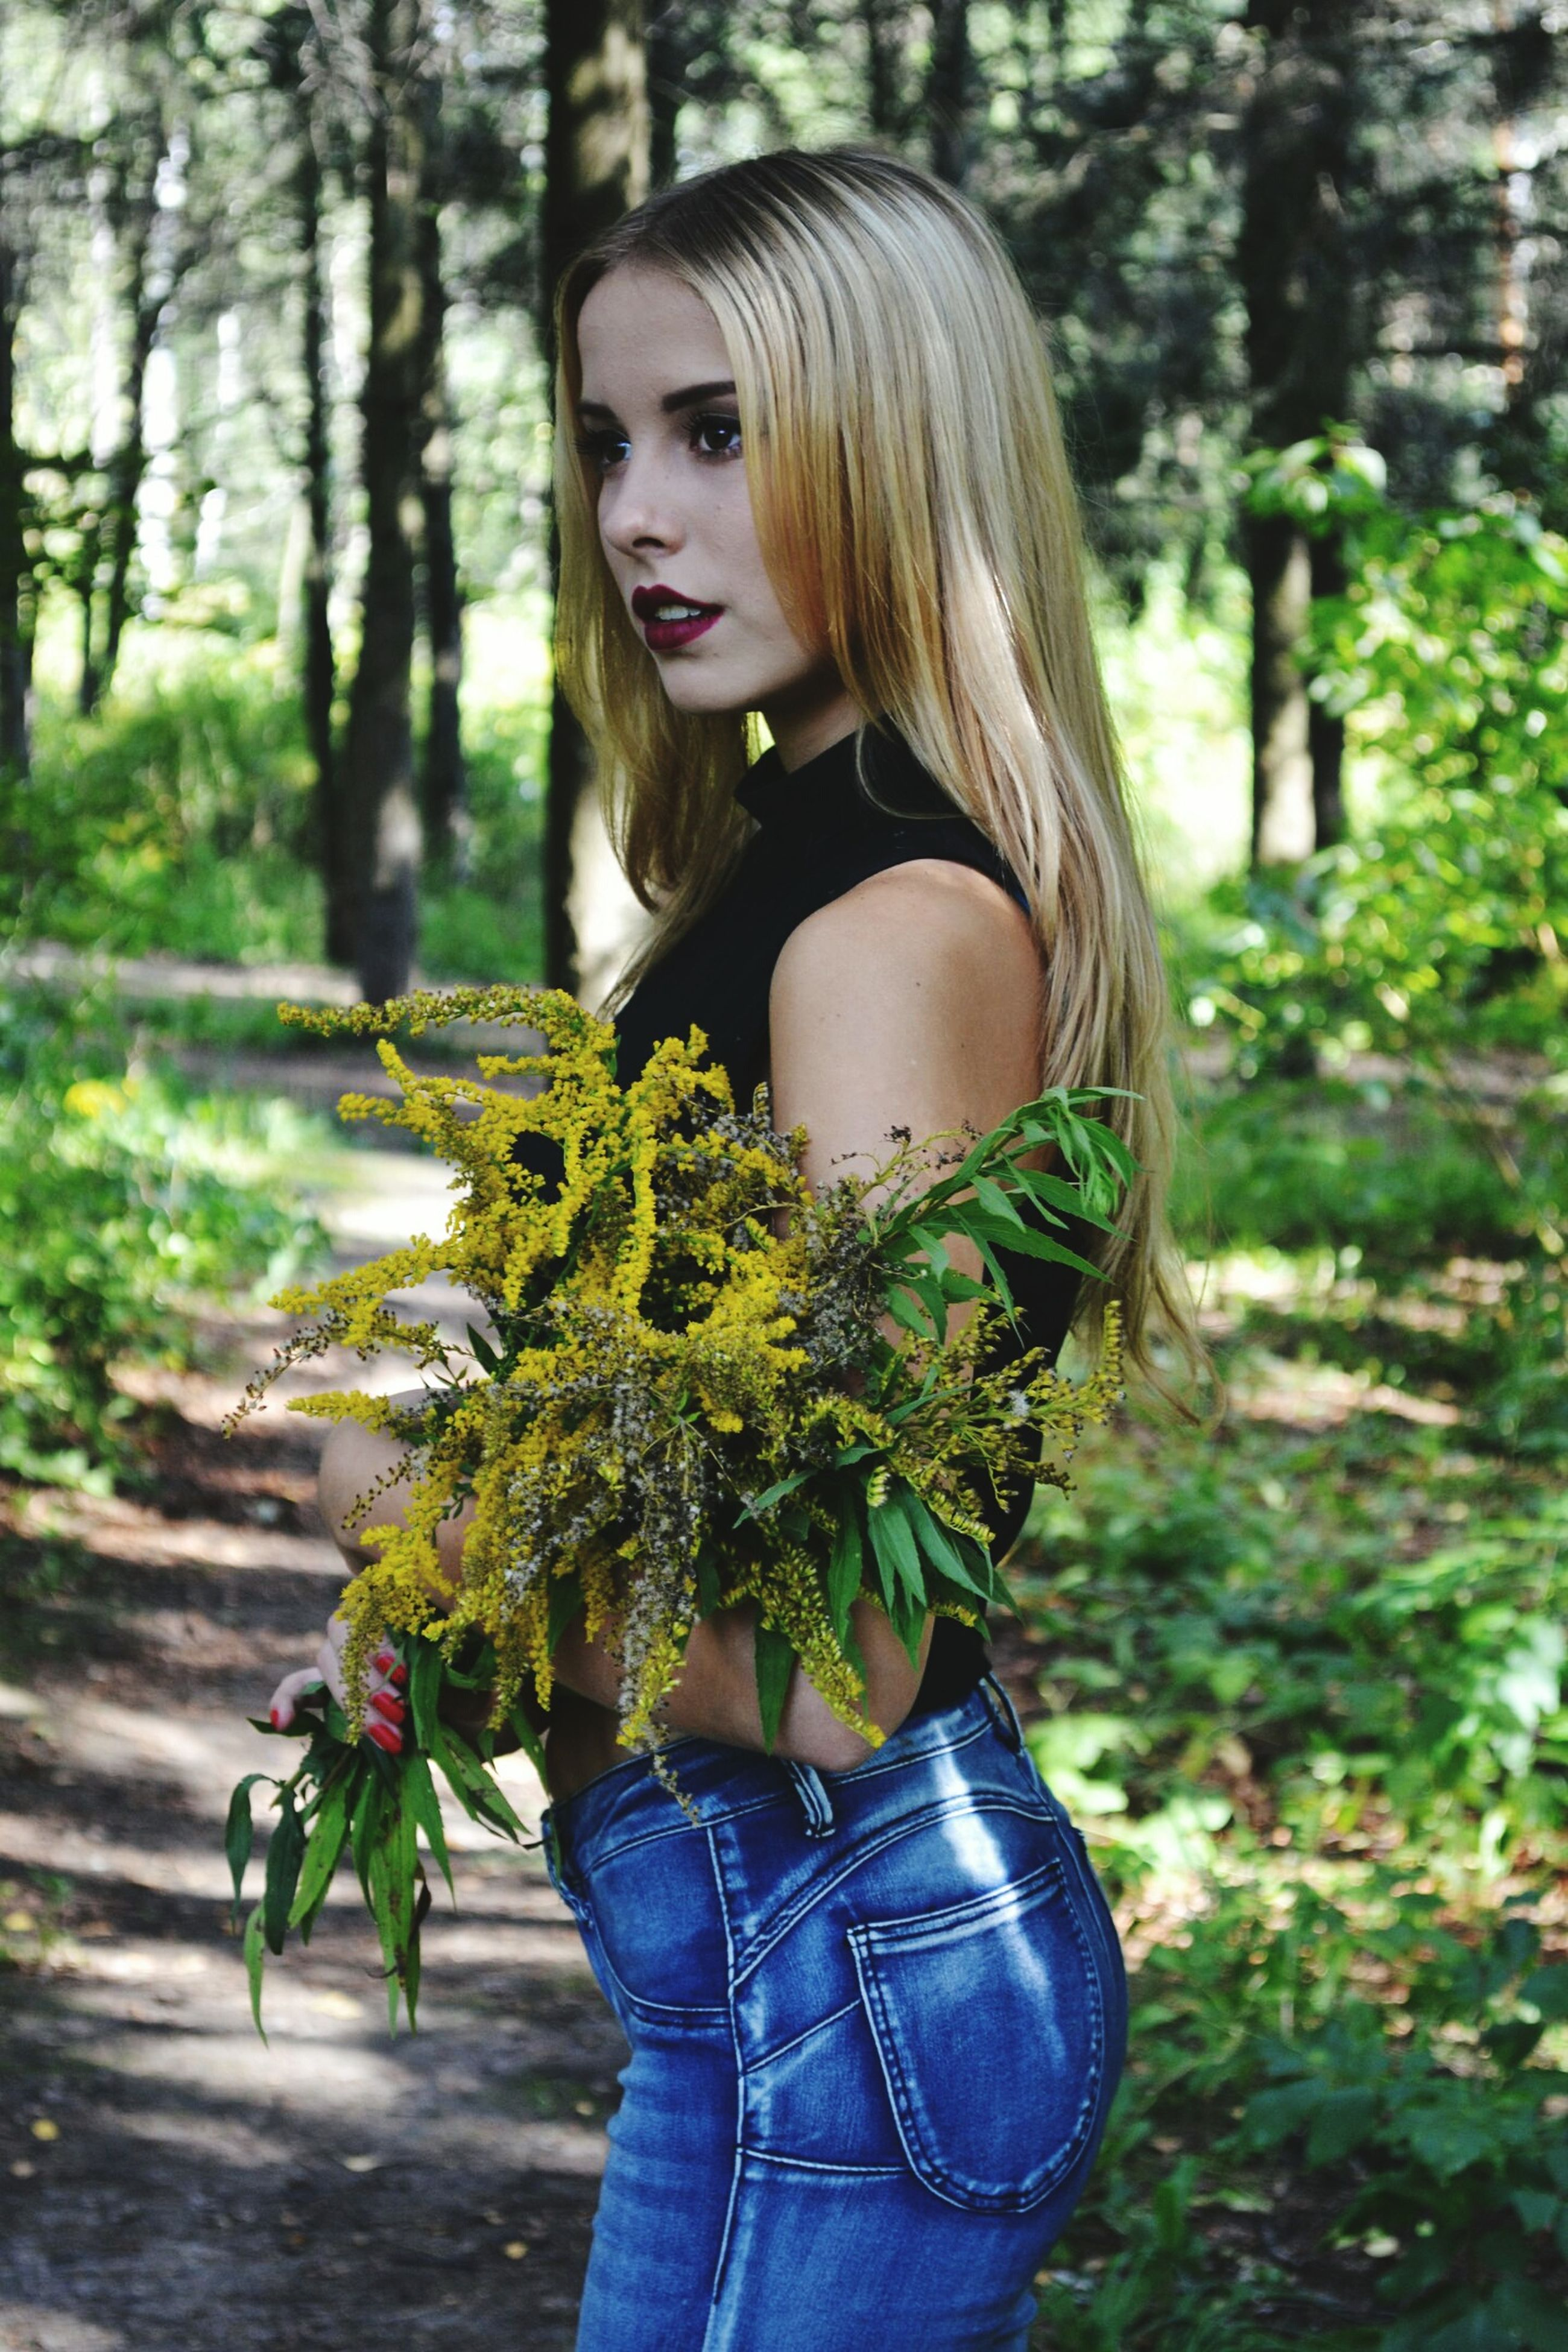 young women, young adult, tree, long hair, standing, leisure activity, forest, lifestyles, focus on foreground, casual clothing, beauty, front view, person, holding, woodland, day, leaves, nature, outdoors, freshness, beautiful people